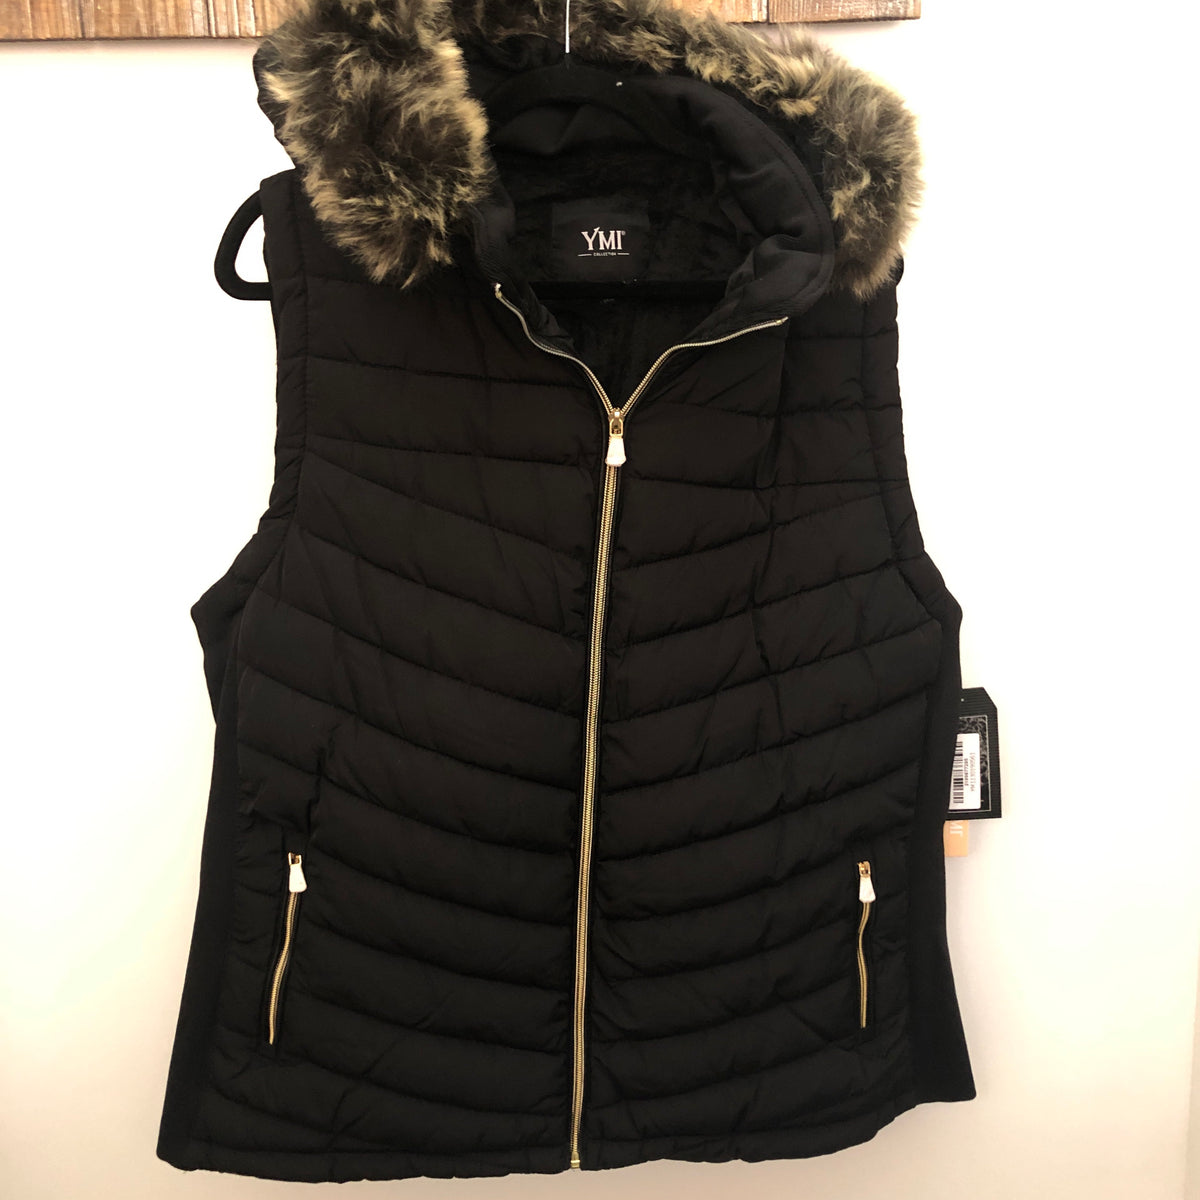 Sherpa Lined Vest with Removable Fur hood